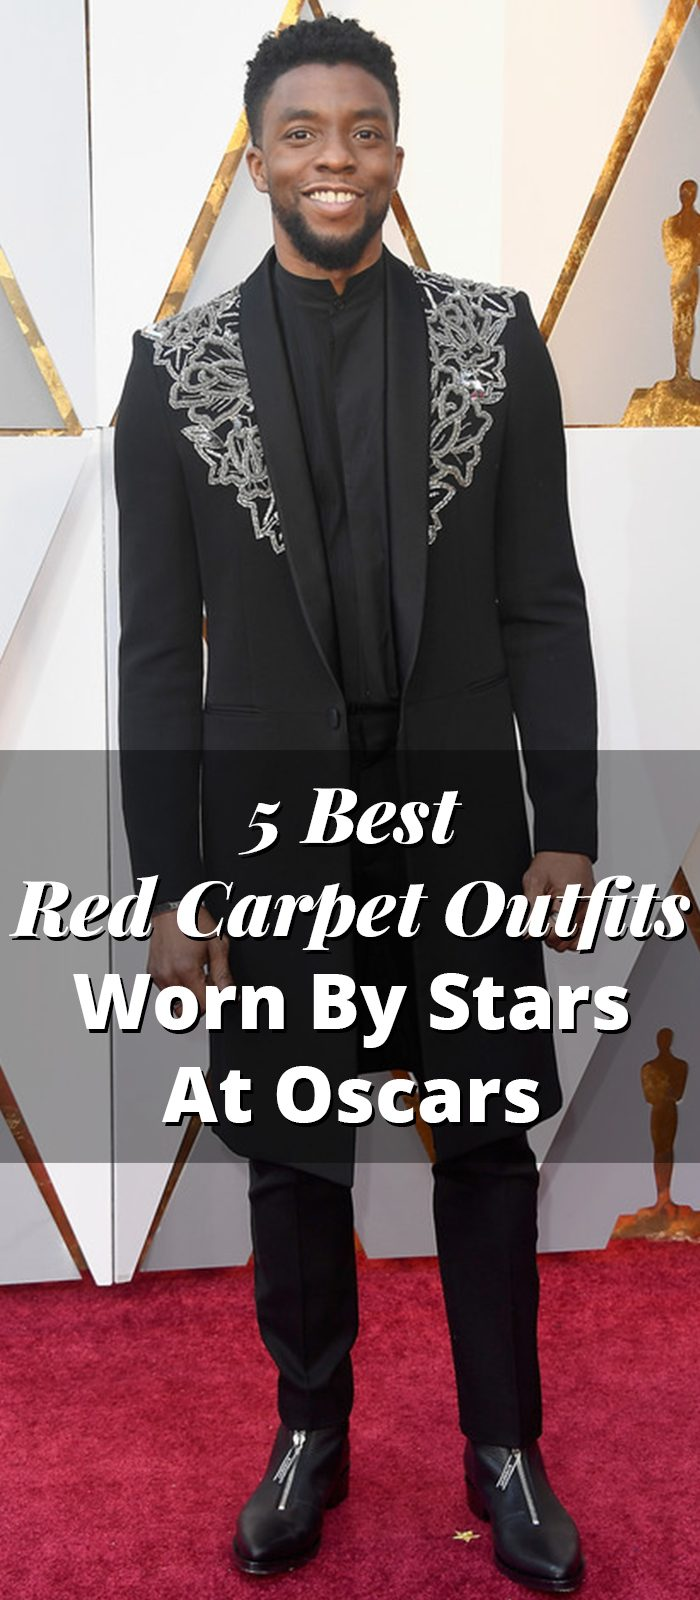 5 Best Red Carpet Outfits Worn By Stars At Oscars